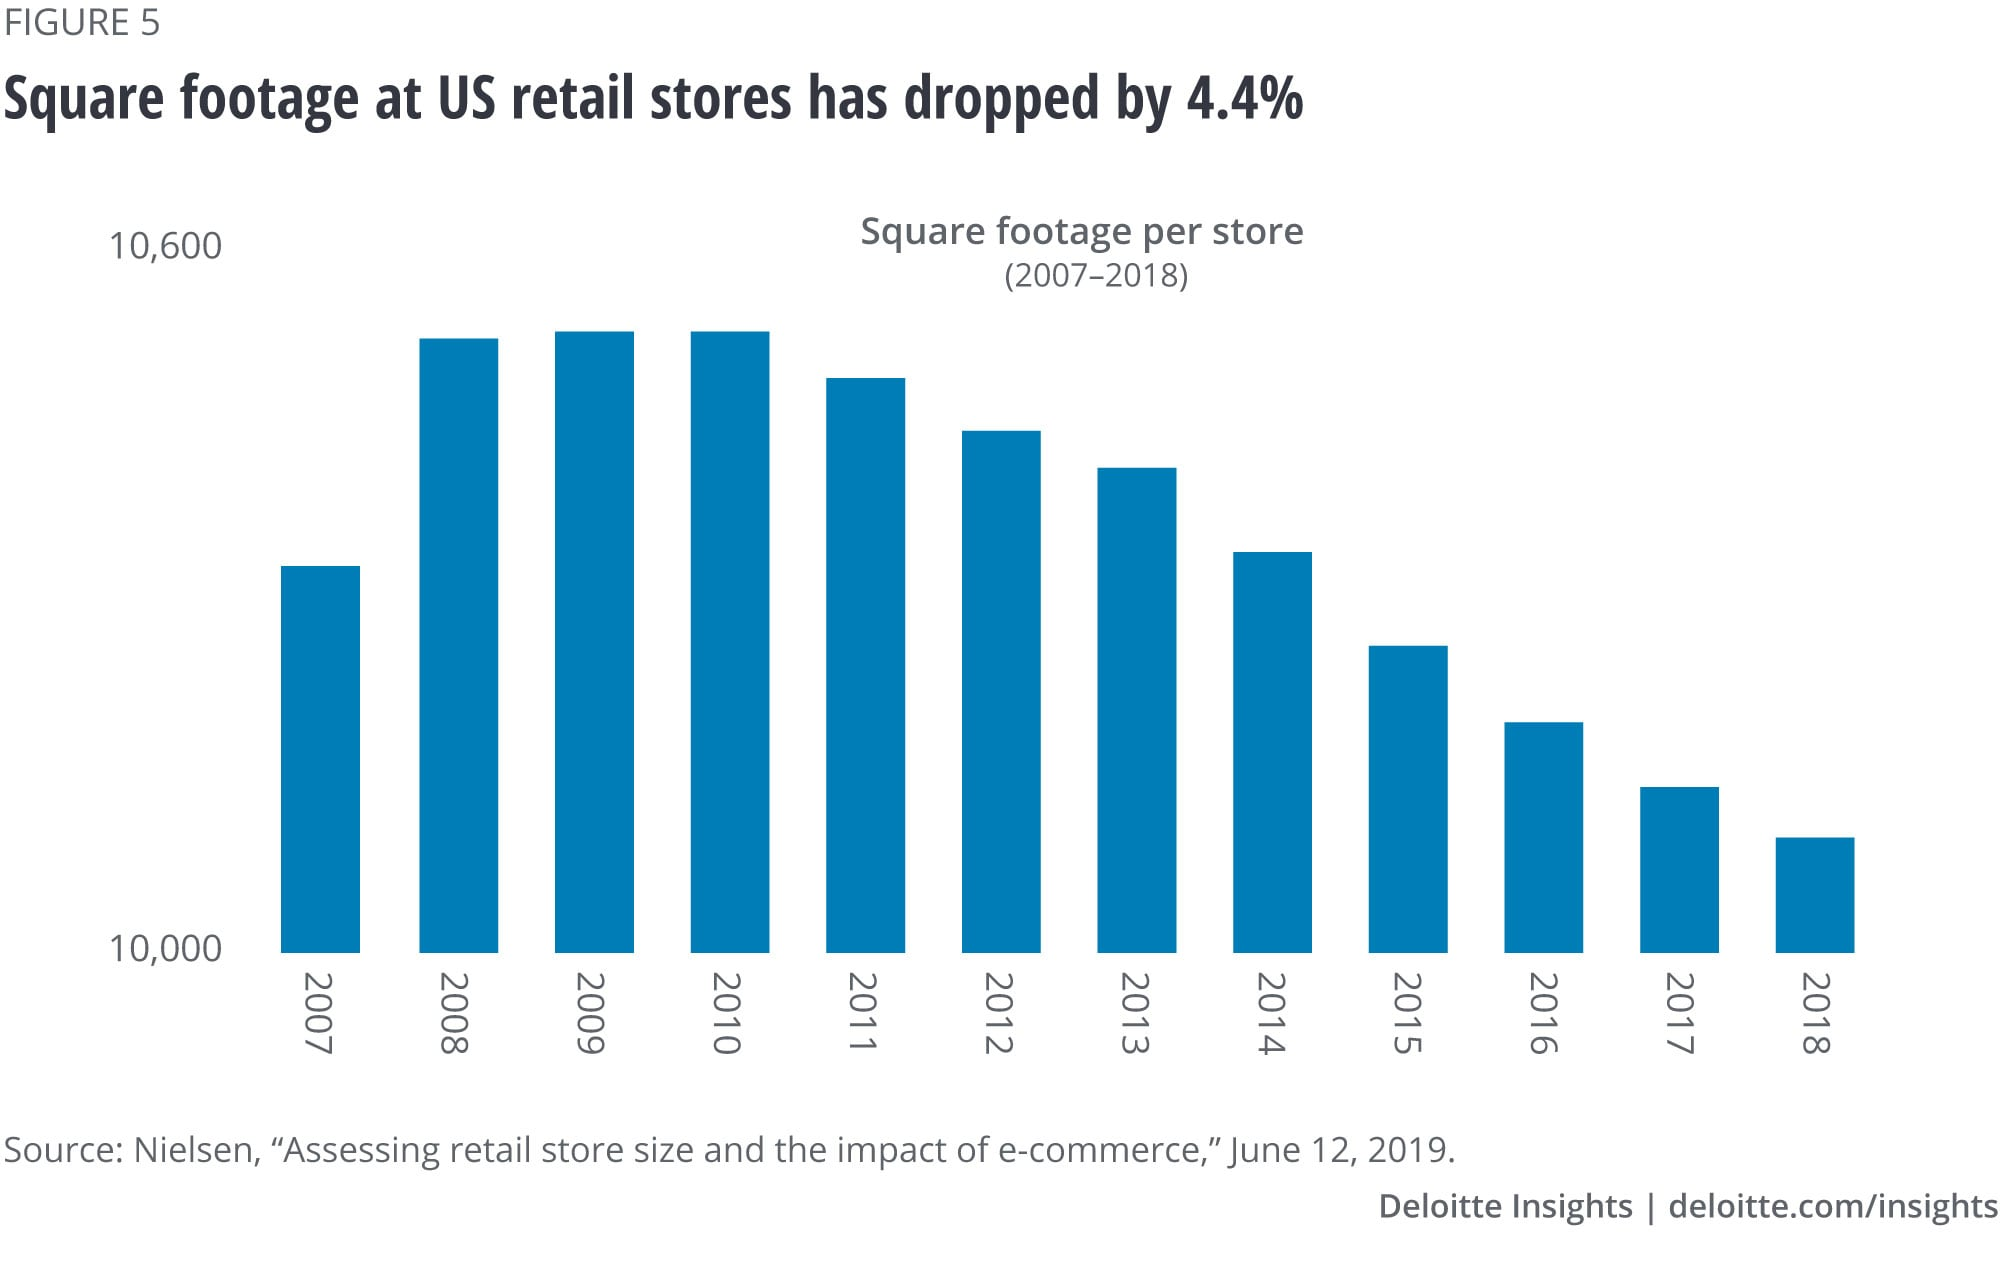 Square footage at US retail stores has dropped by 4.4 percent